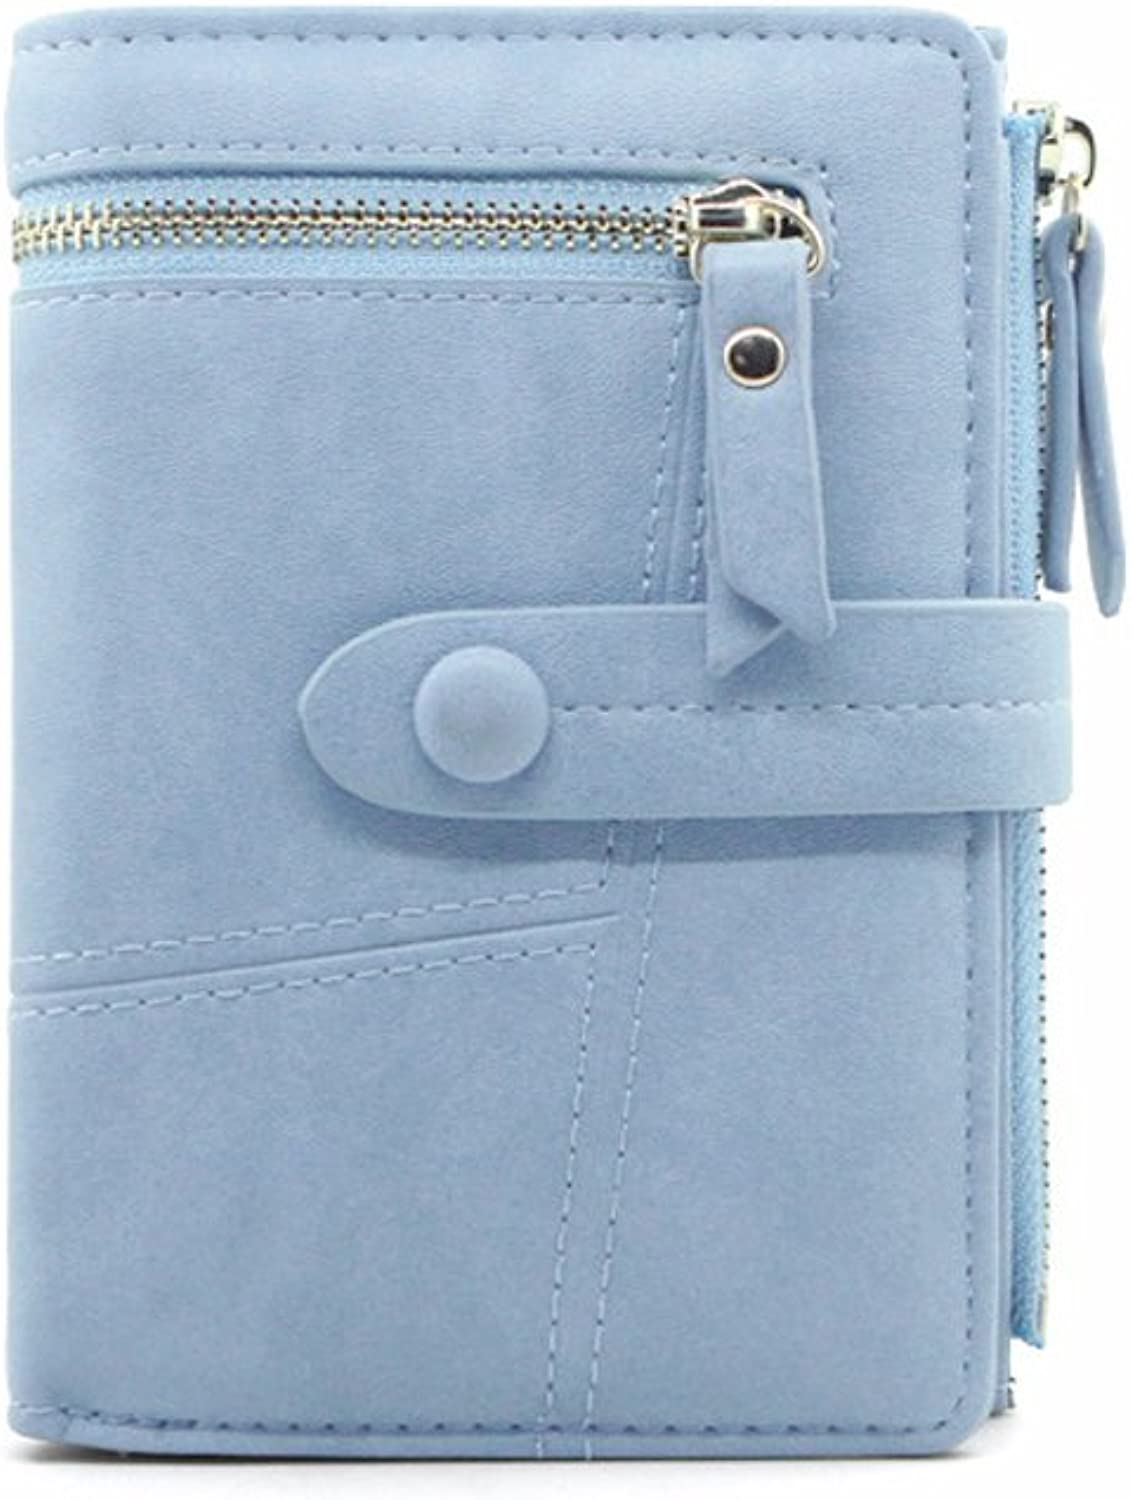 Women Leather Wallet With ID Window Card Holder Girls Coin Purse with Snap Closure